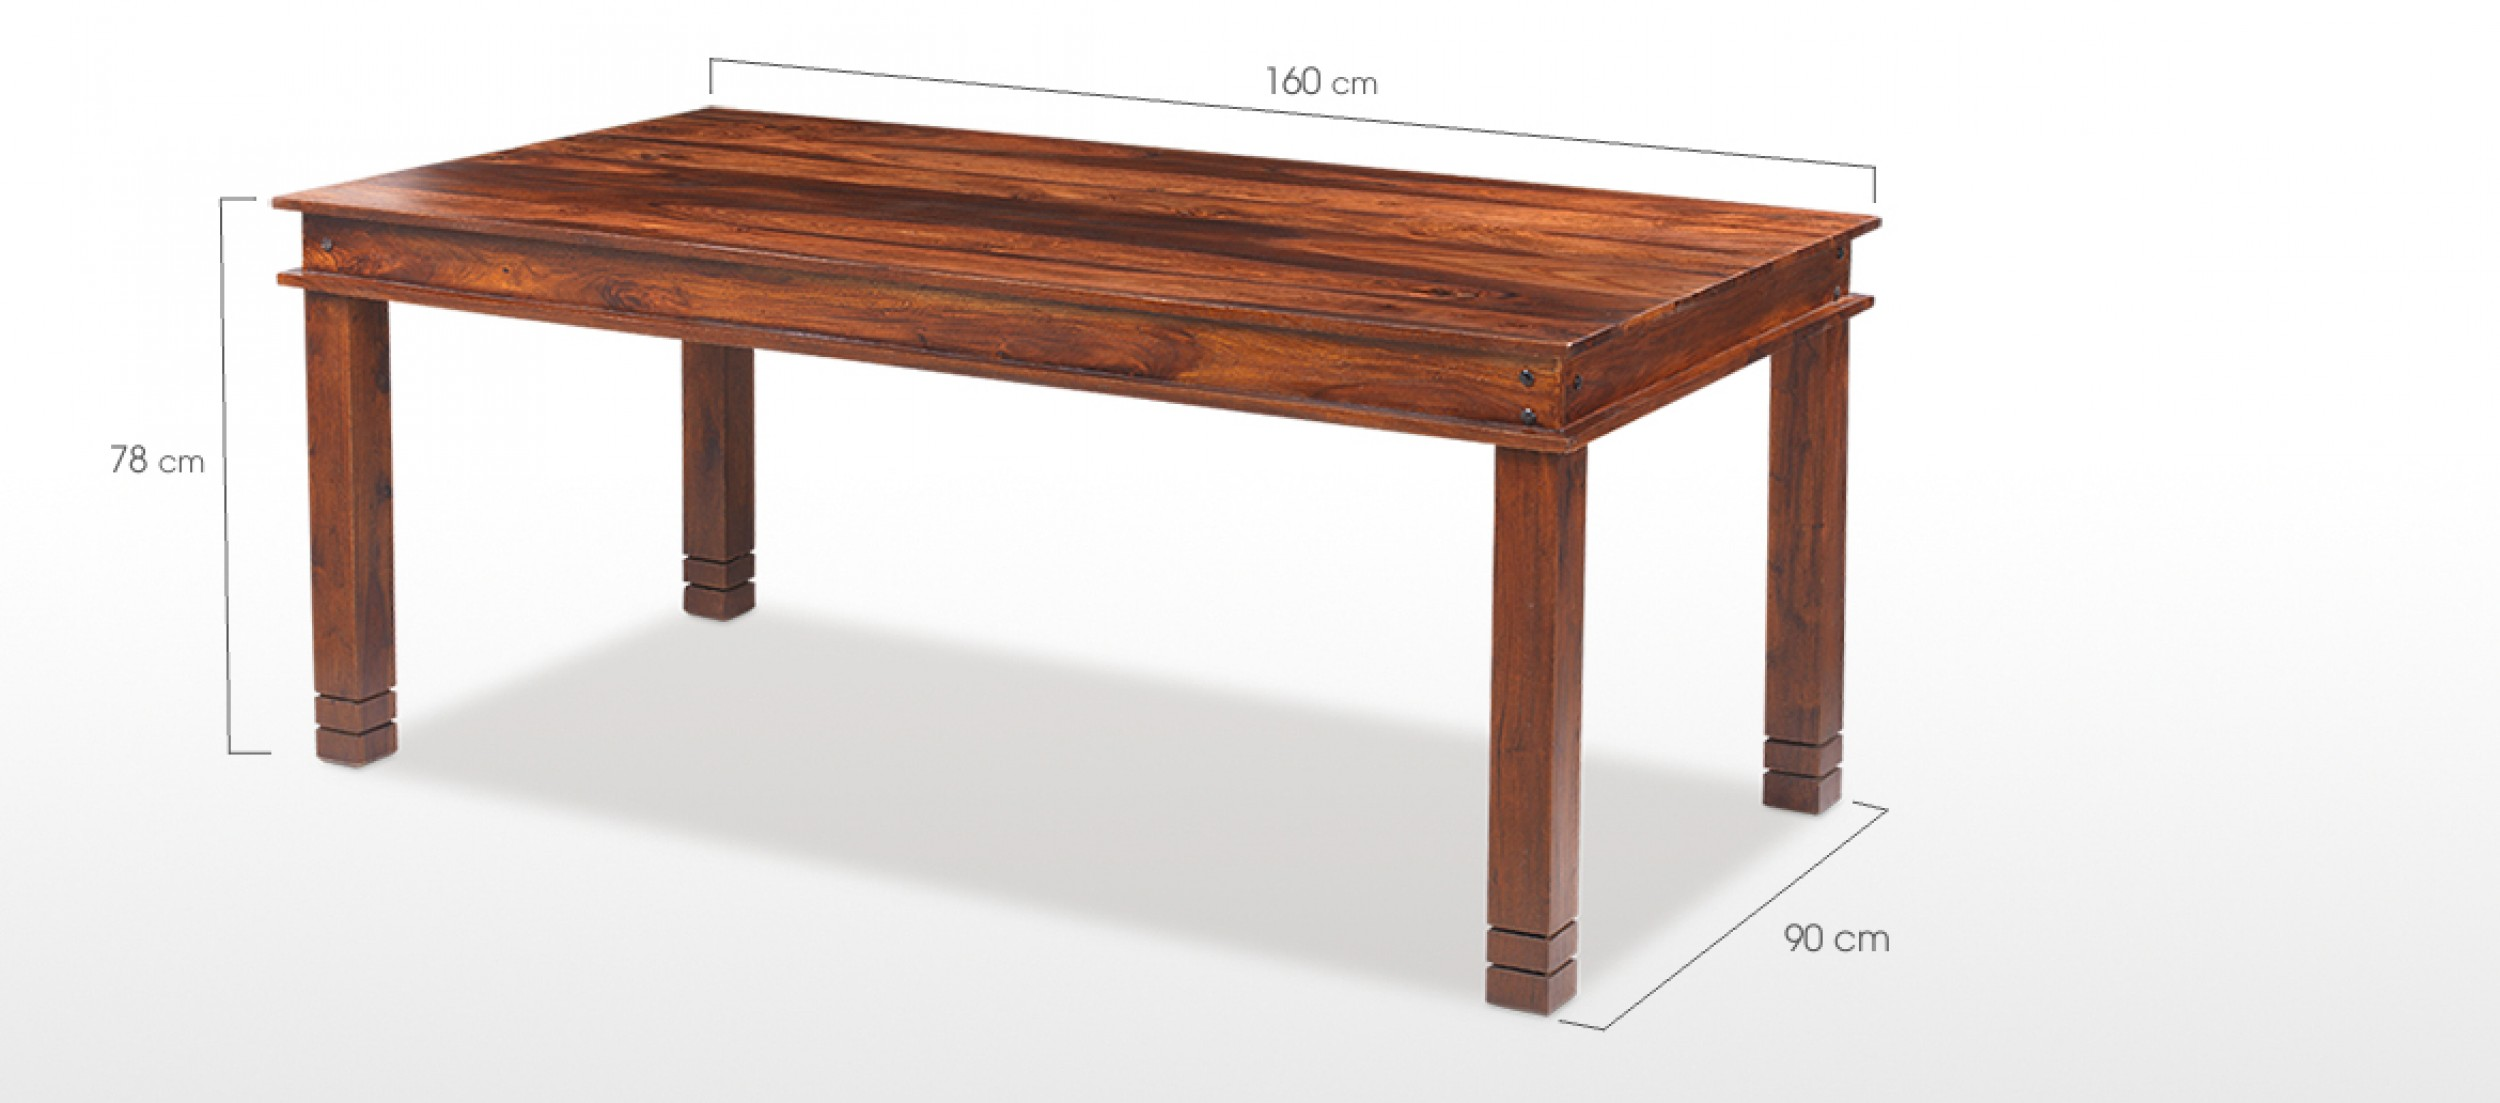 28 jali dining table and chairs jali sheesham 160 cm chunky